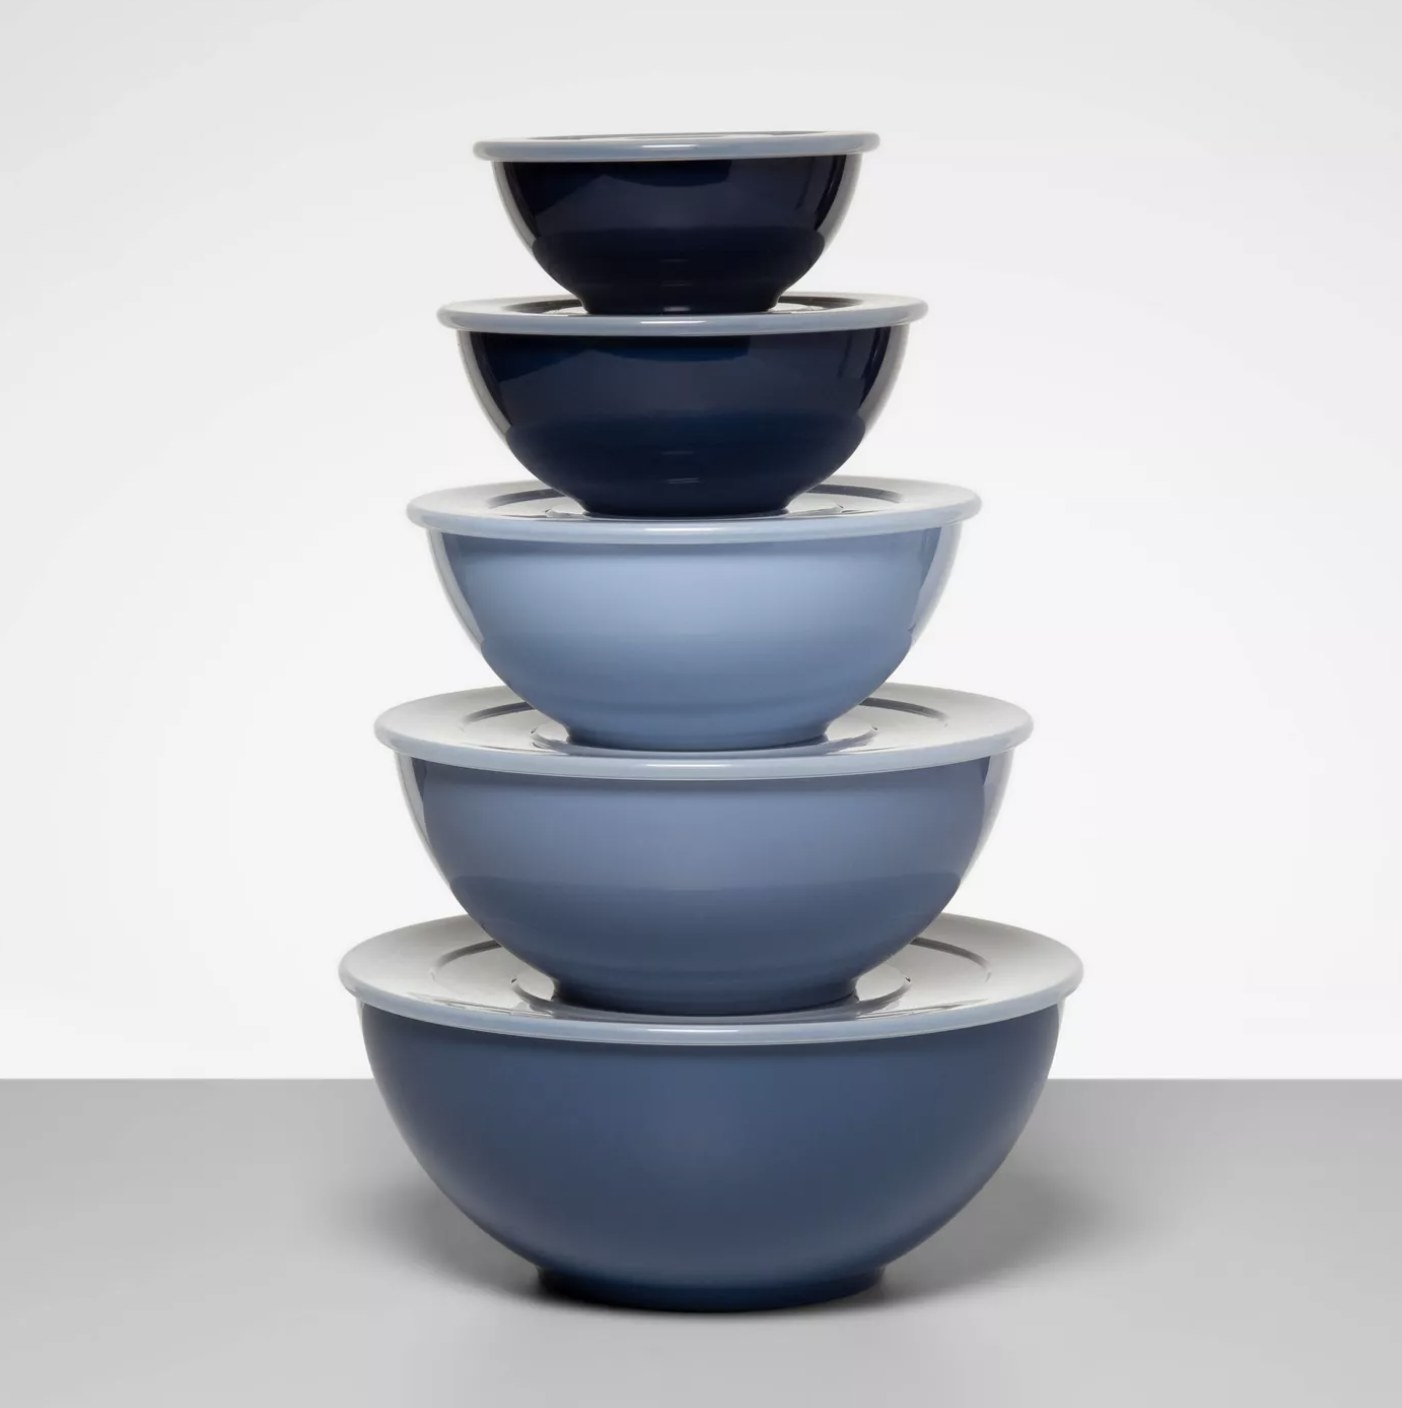 The blue mixing bowls